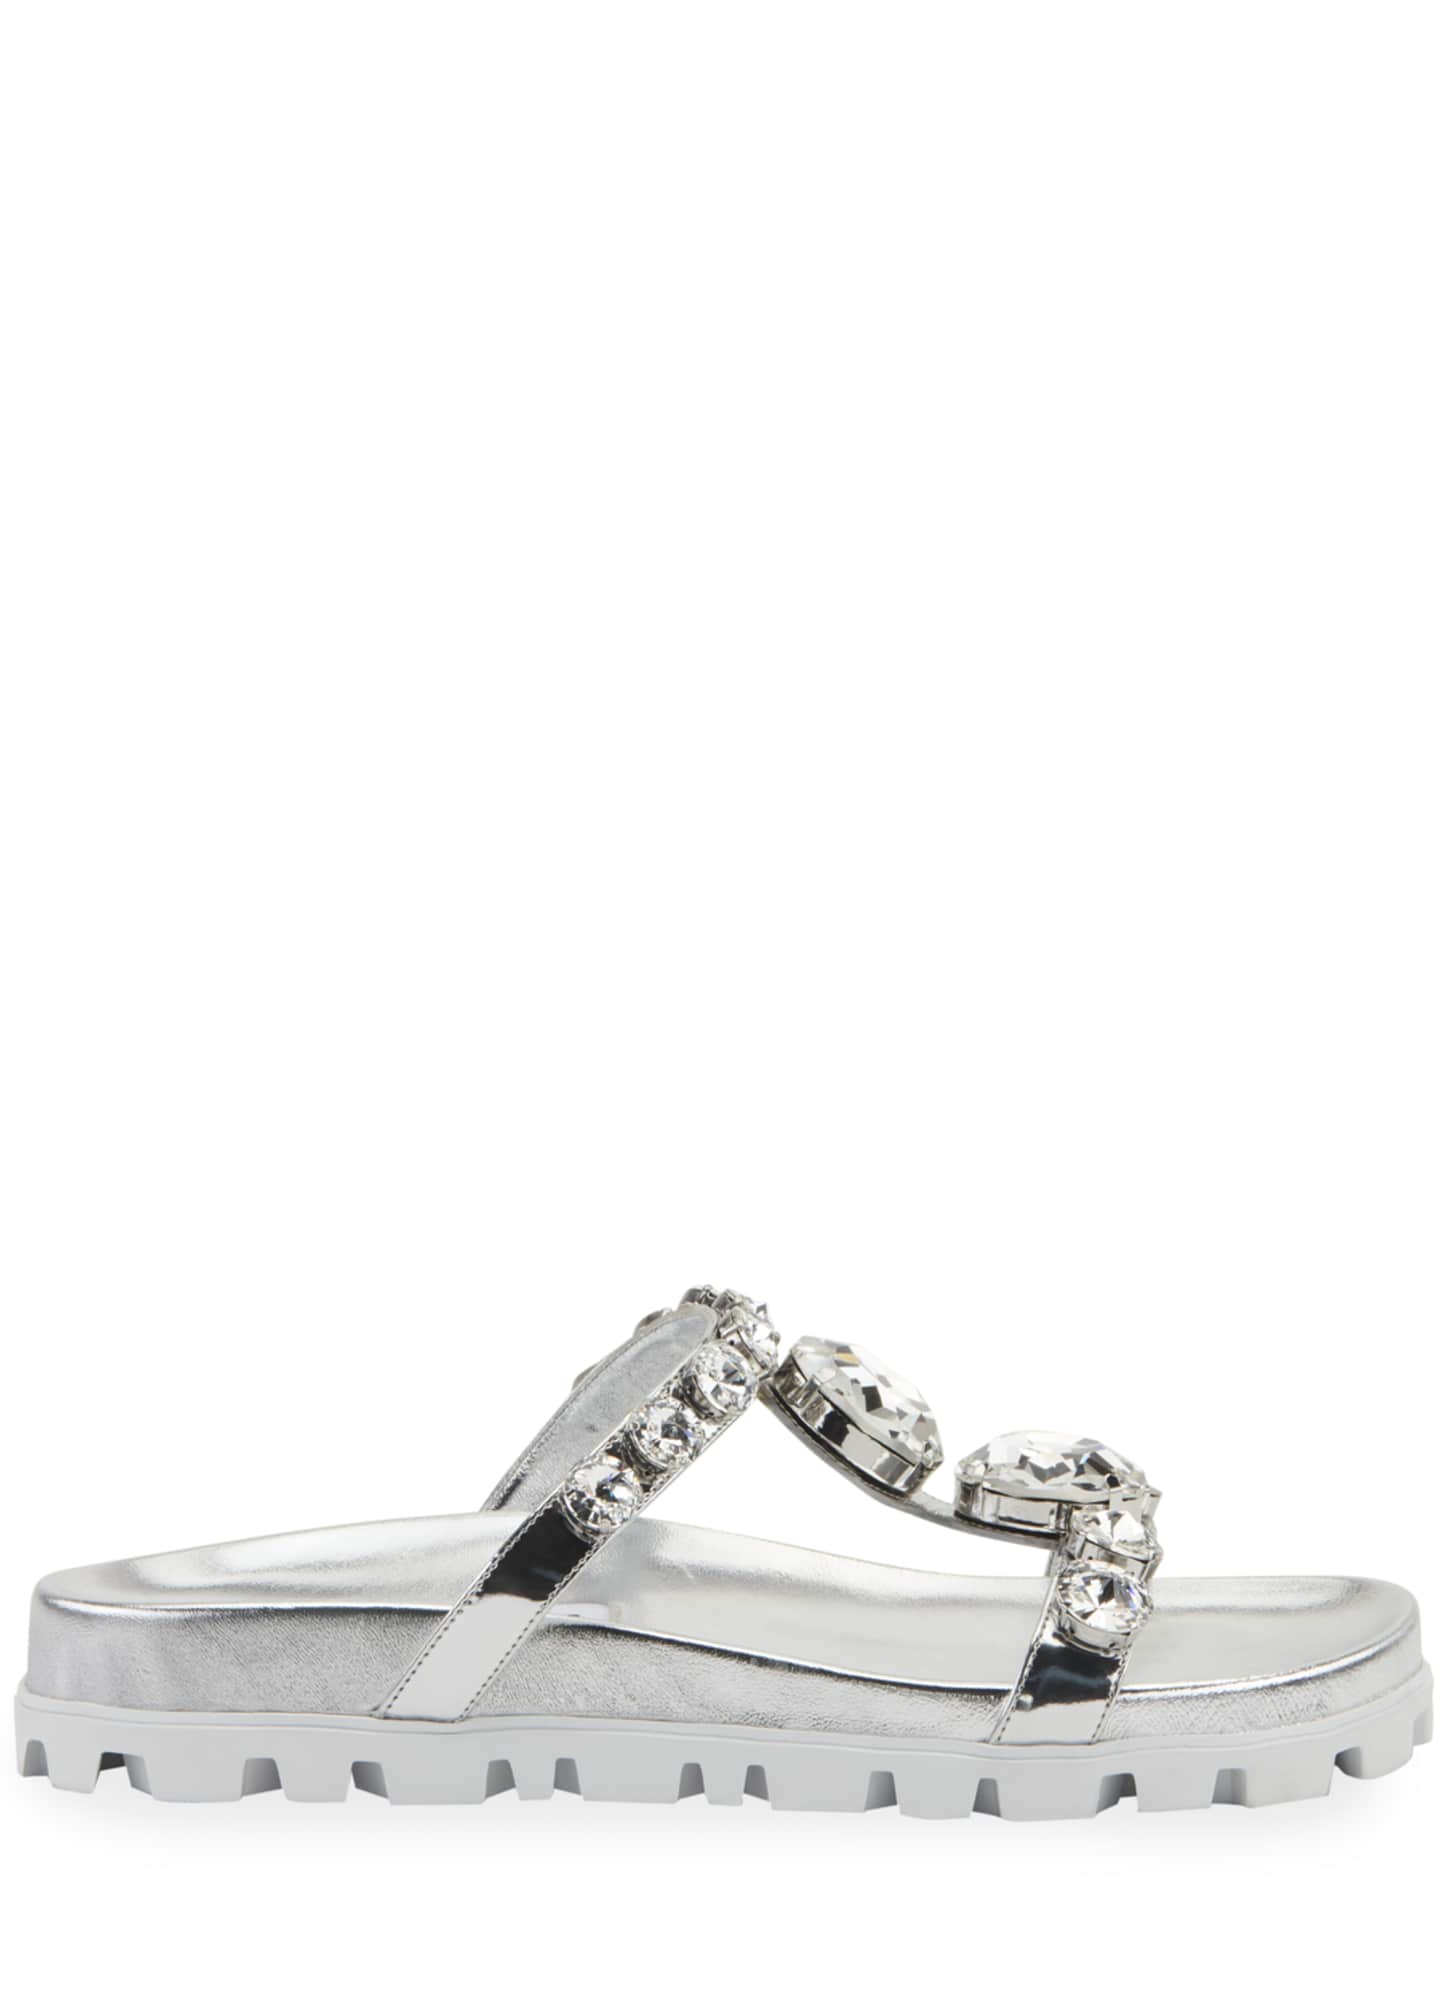 Image 2 of 2: Crystal Metallic Slide Sandals